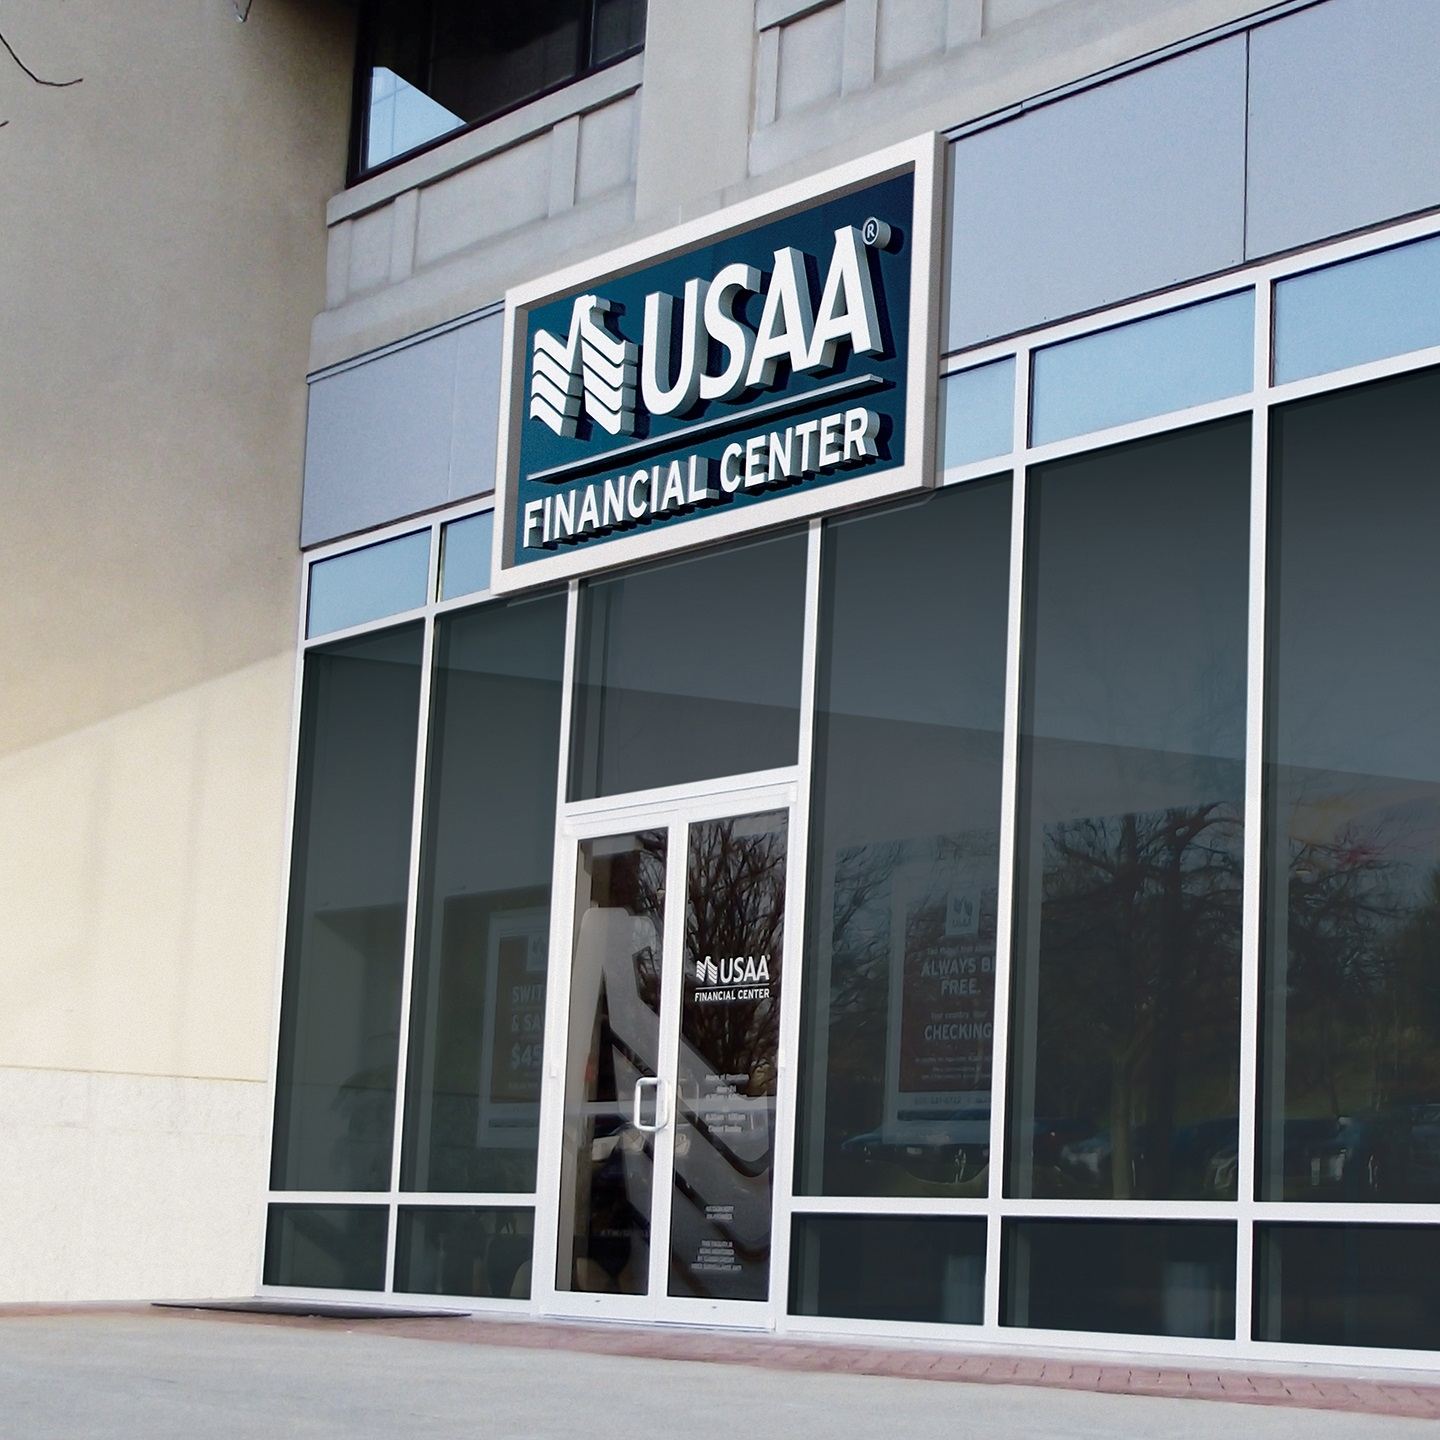 Usaa atm near me - usaa atm near me Can your search query on